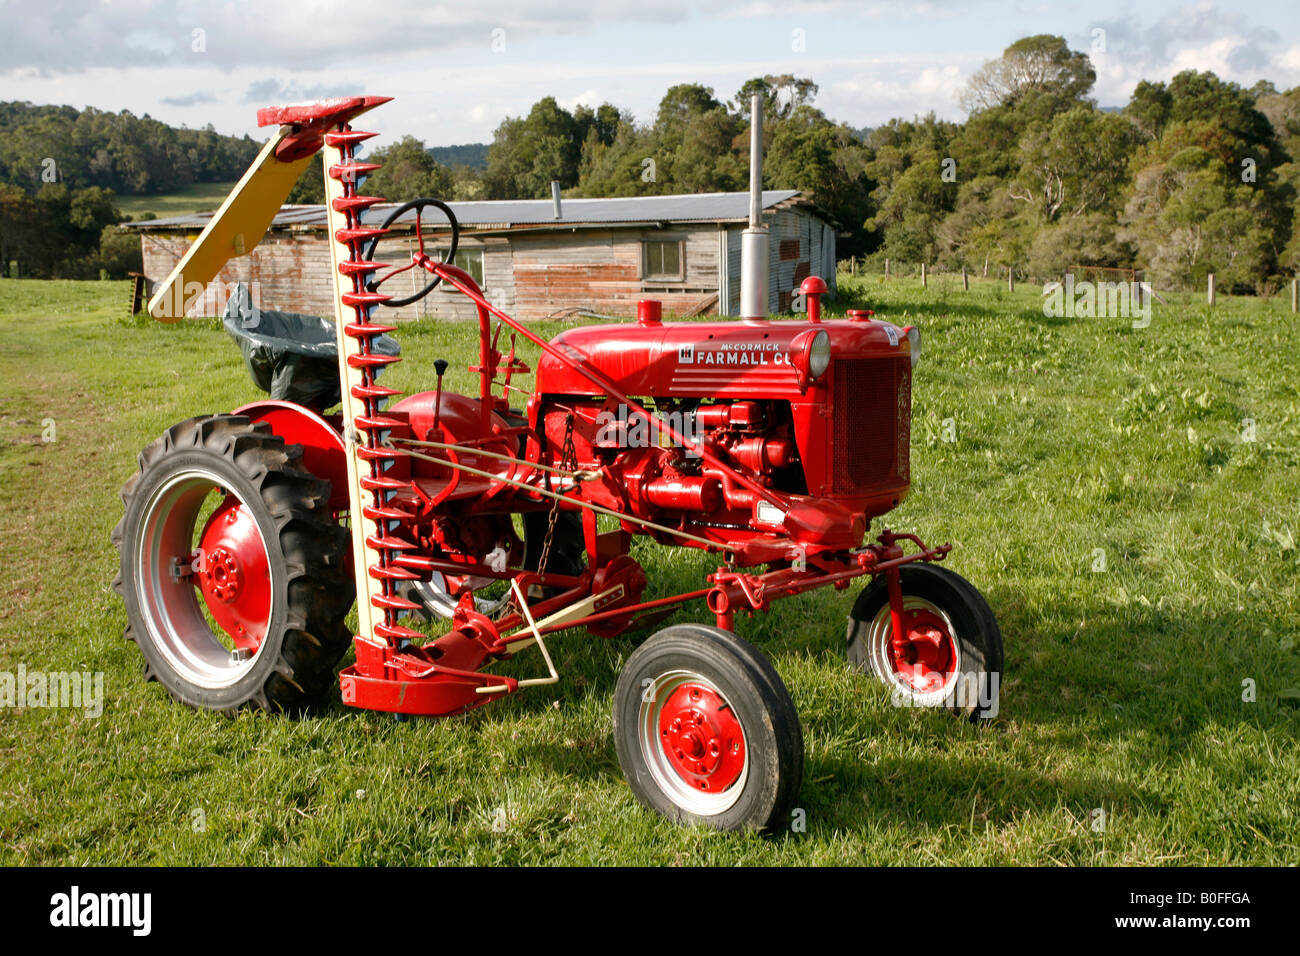 Antique Ih Cub Tractor : Antique international farmall cub tractor with a